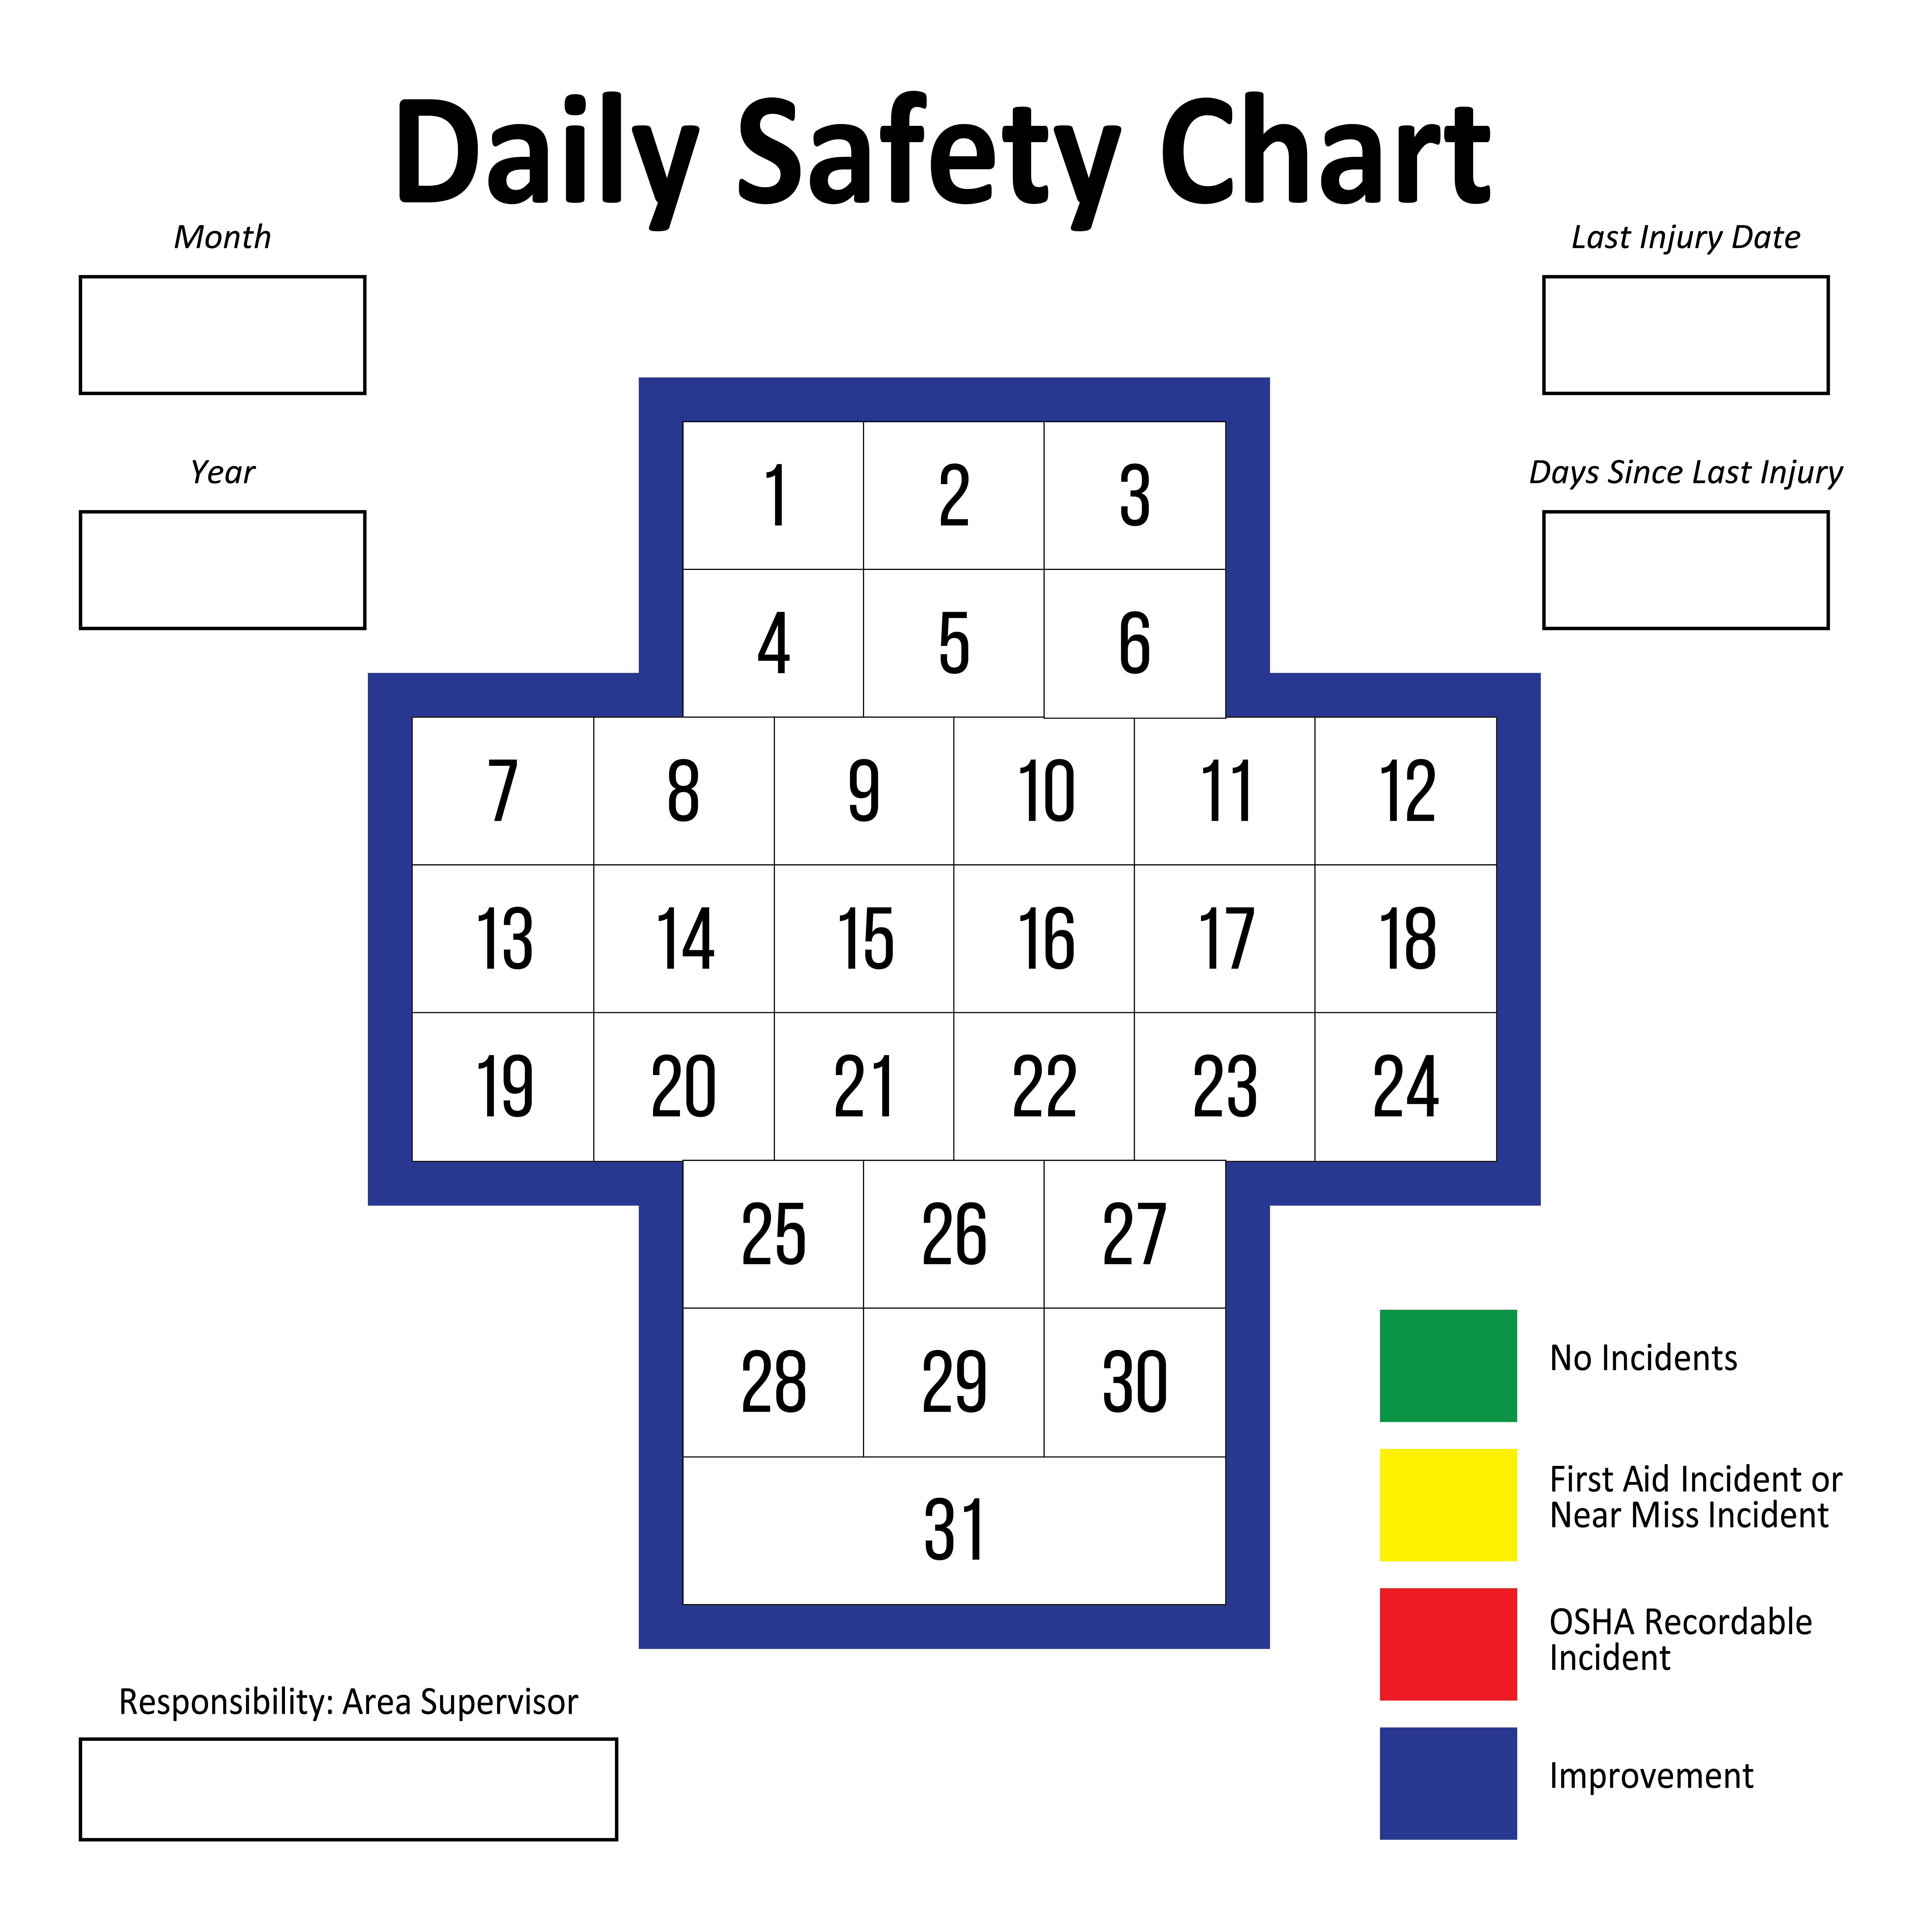 Daily Safety Chart Adhesive Overlay